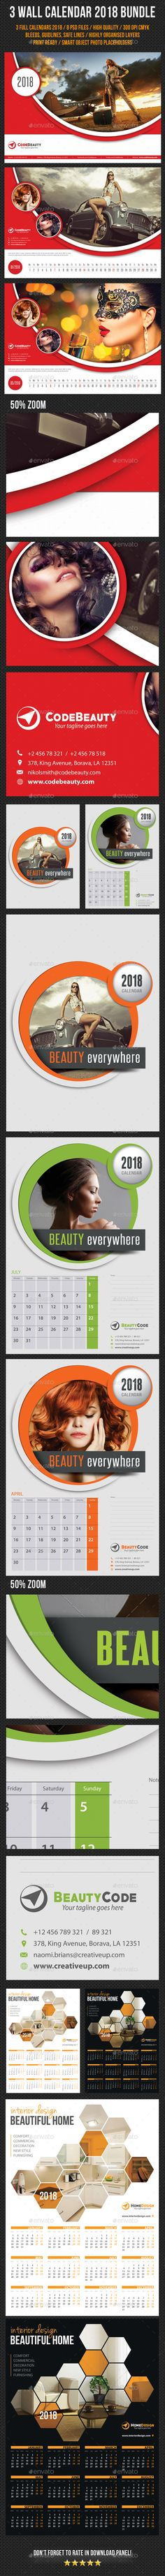 4 clean, crisp, high impact, multiuse PSD Calendar Templates for 2018, perfect for advertisement, presentation or product promotio